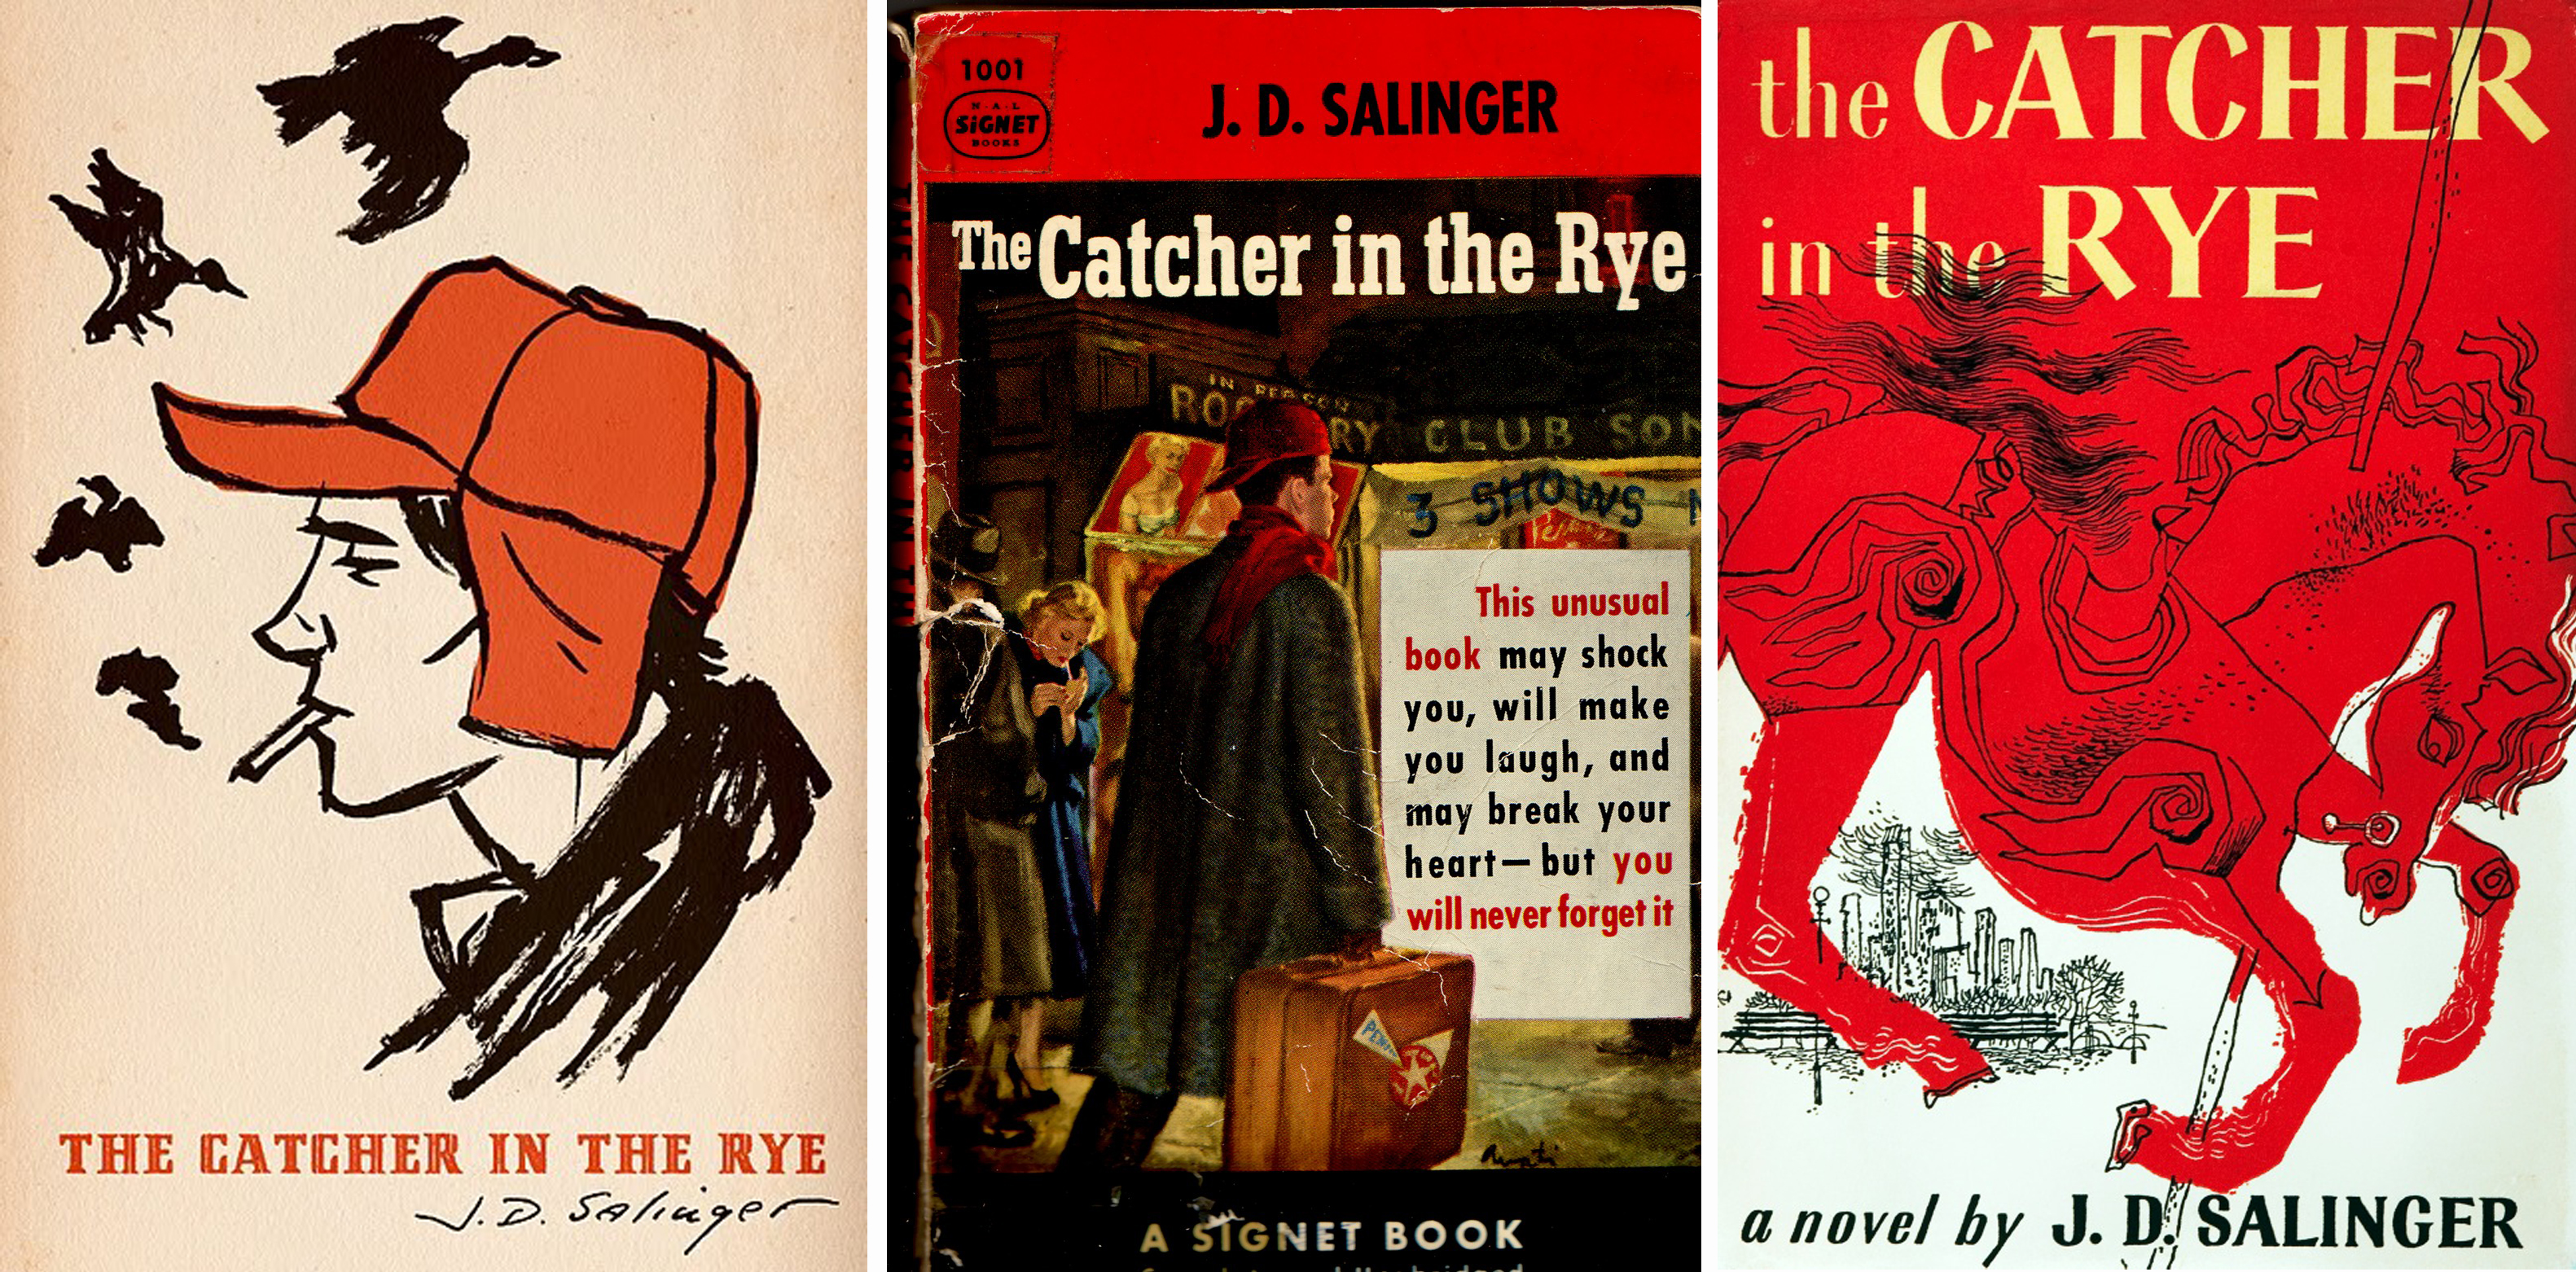 a book report on j d salingers novel the catcher in the rye